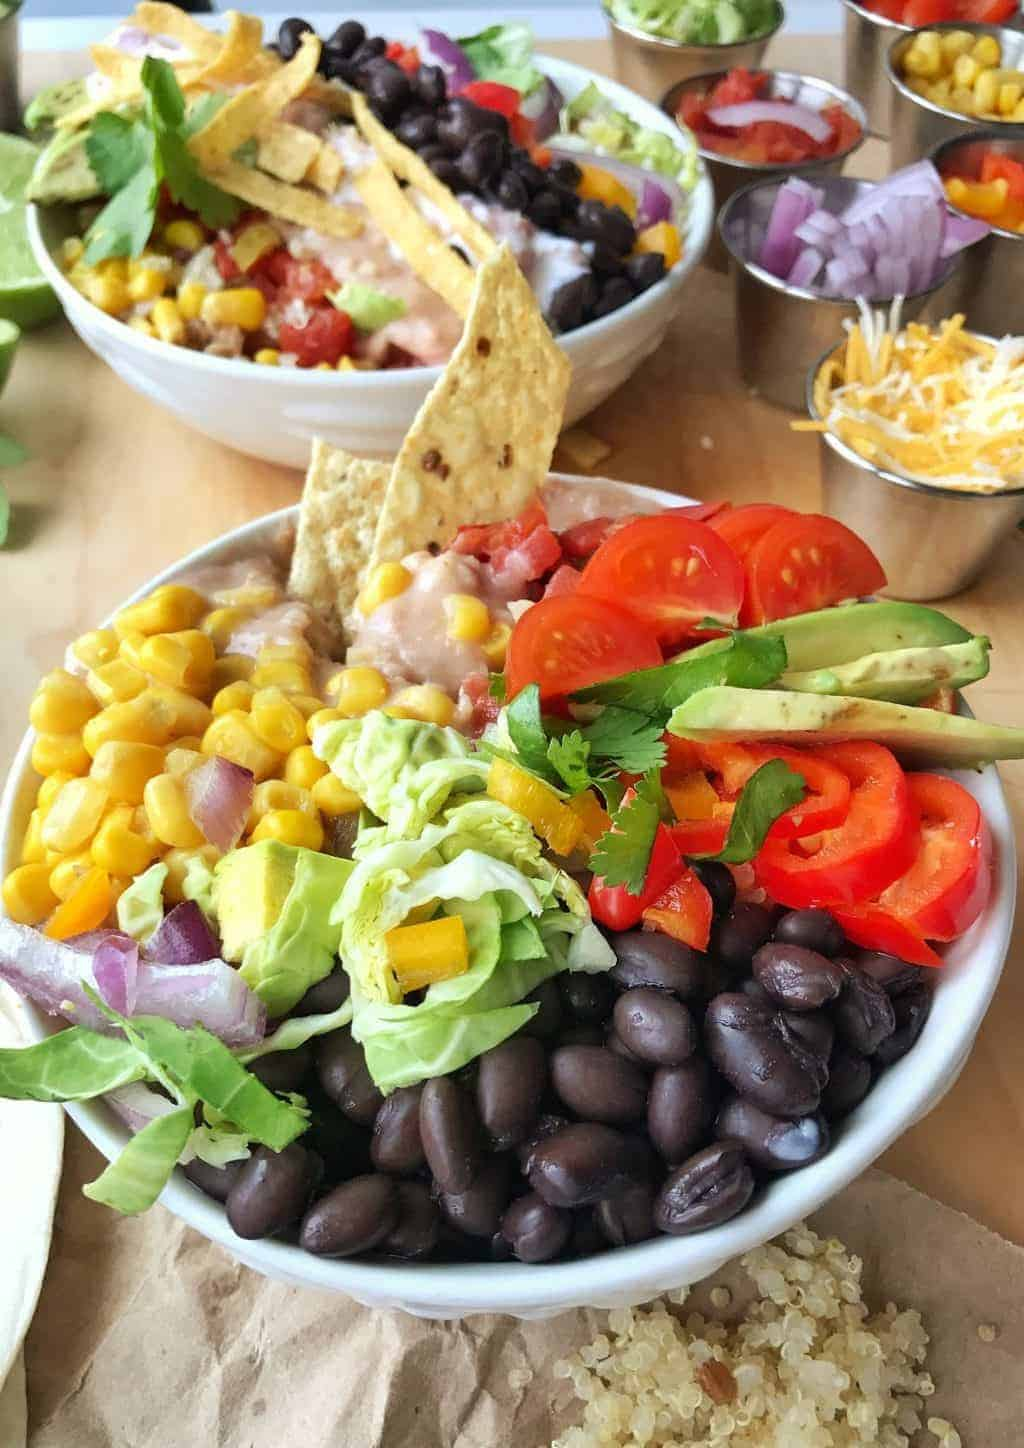 Nacho bowls with black beans, corn, tomatoes and avocado are shown in two white bowls with cheese and tortilla chips.